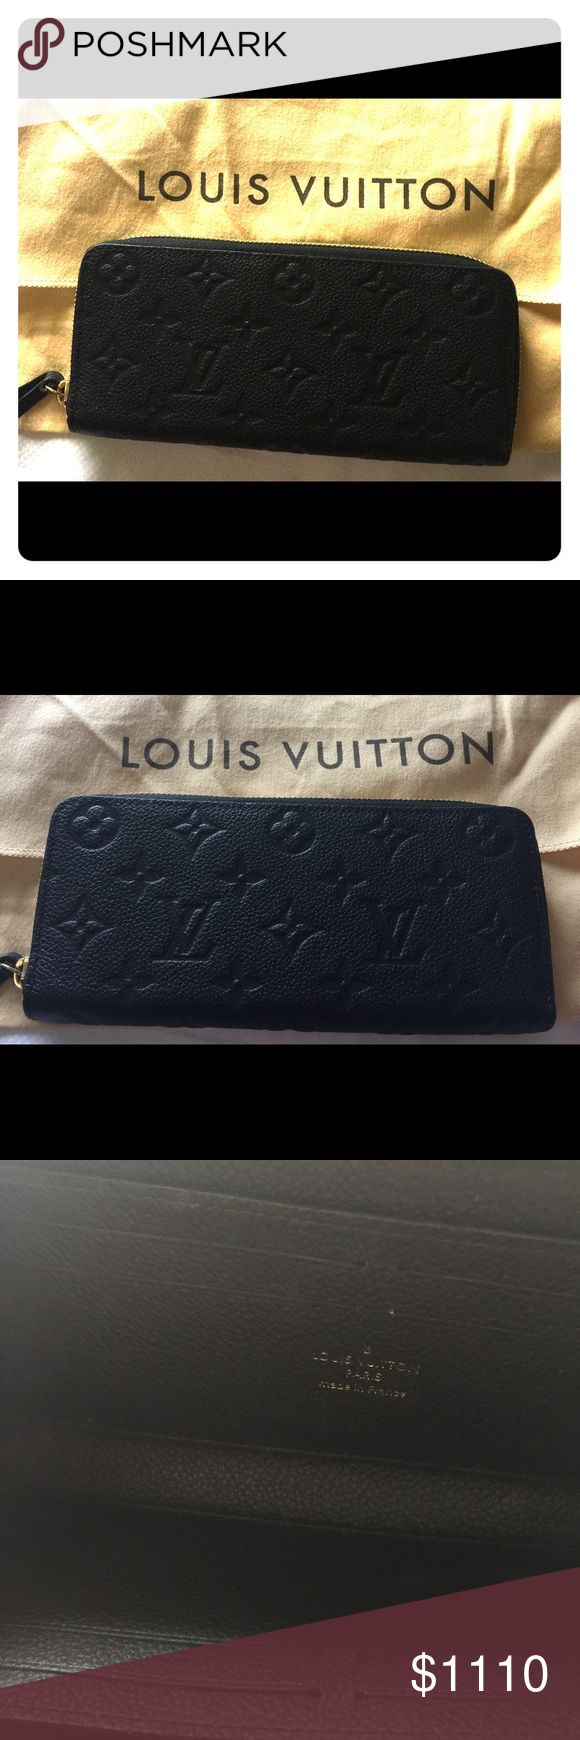 EUC Authentic Louis Vuitton Zippy Wallet; Black EUC Authentic Louis Vuitton Zippy Wallet; Black. Virtually brand new. Only used a few times w the beautiful bag that I just sold. MSRP: $1310. Comes w dustbag; no box. Price is firm. Louis Vuitton Bags Wallets